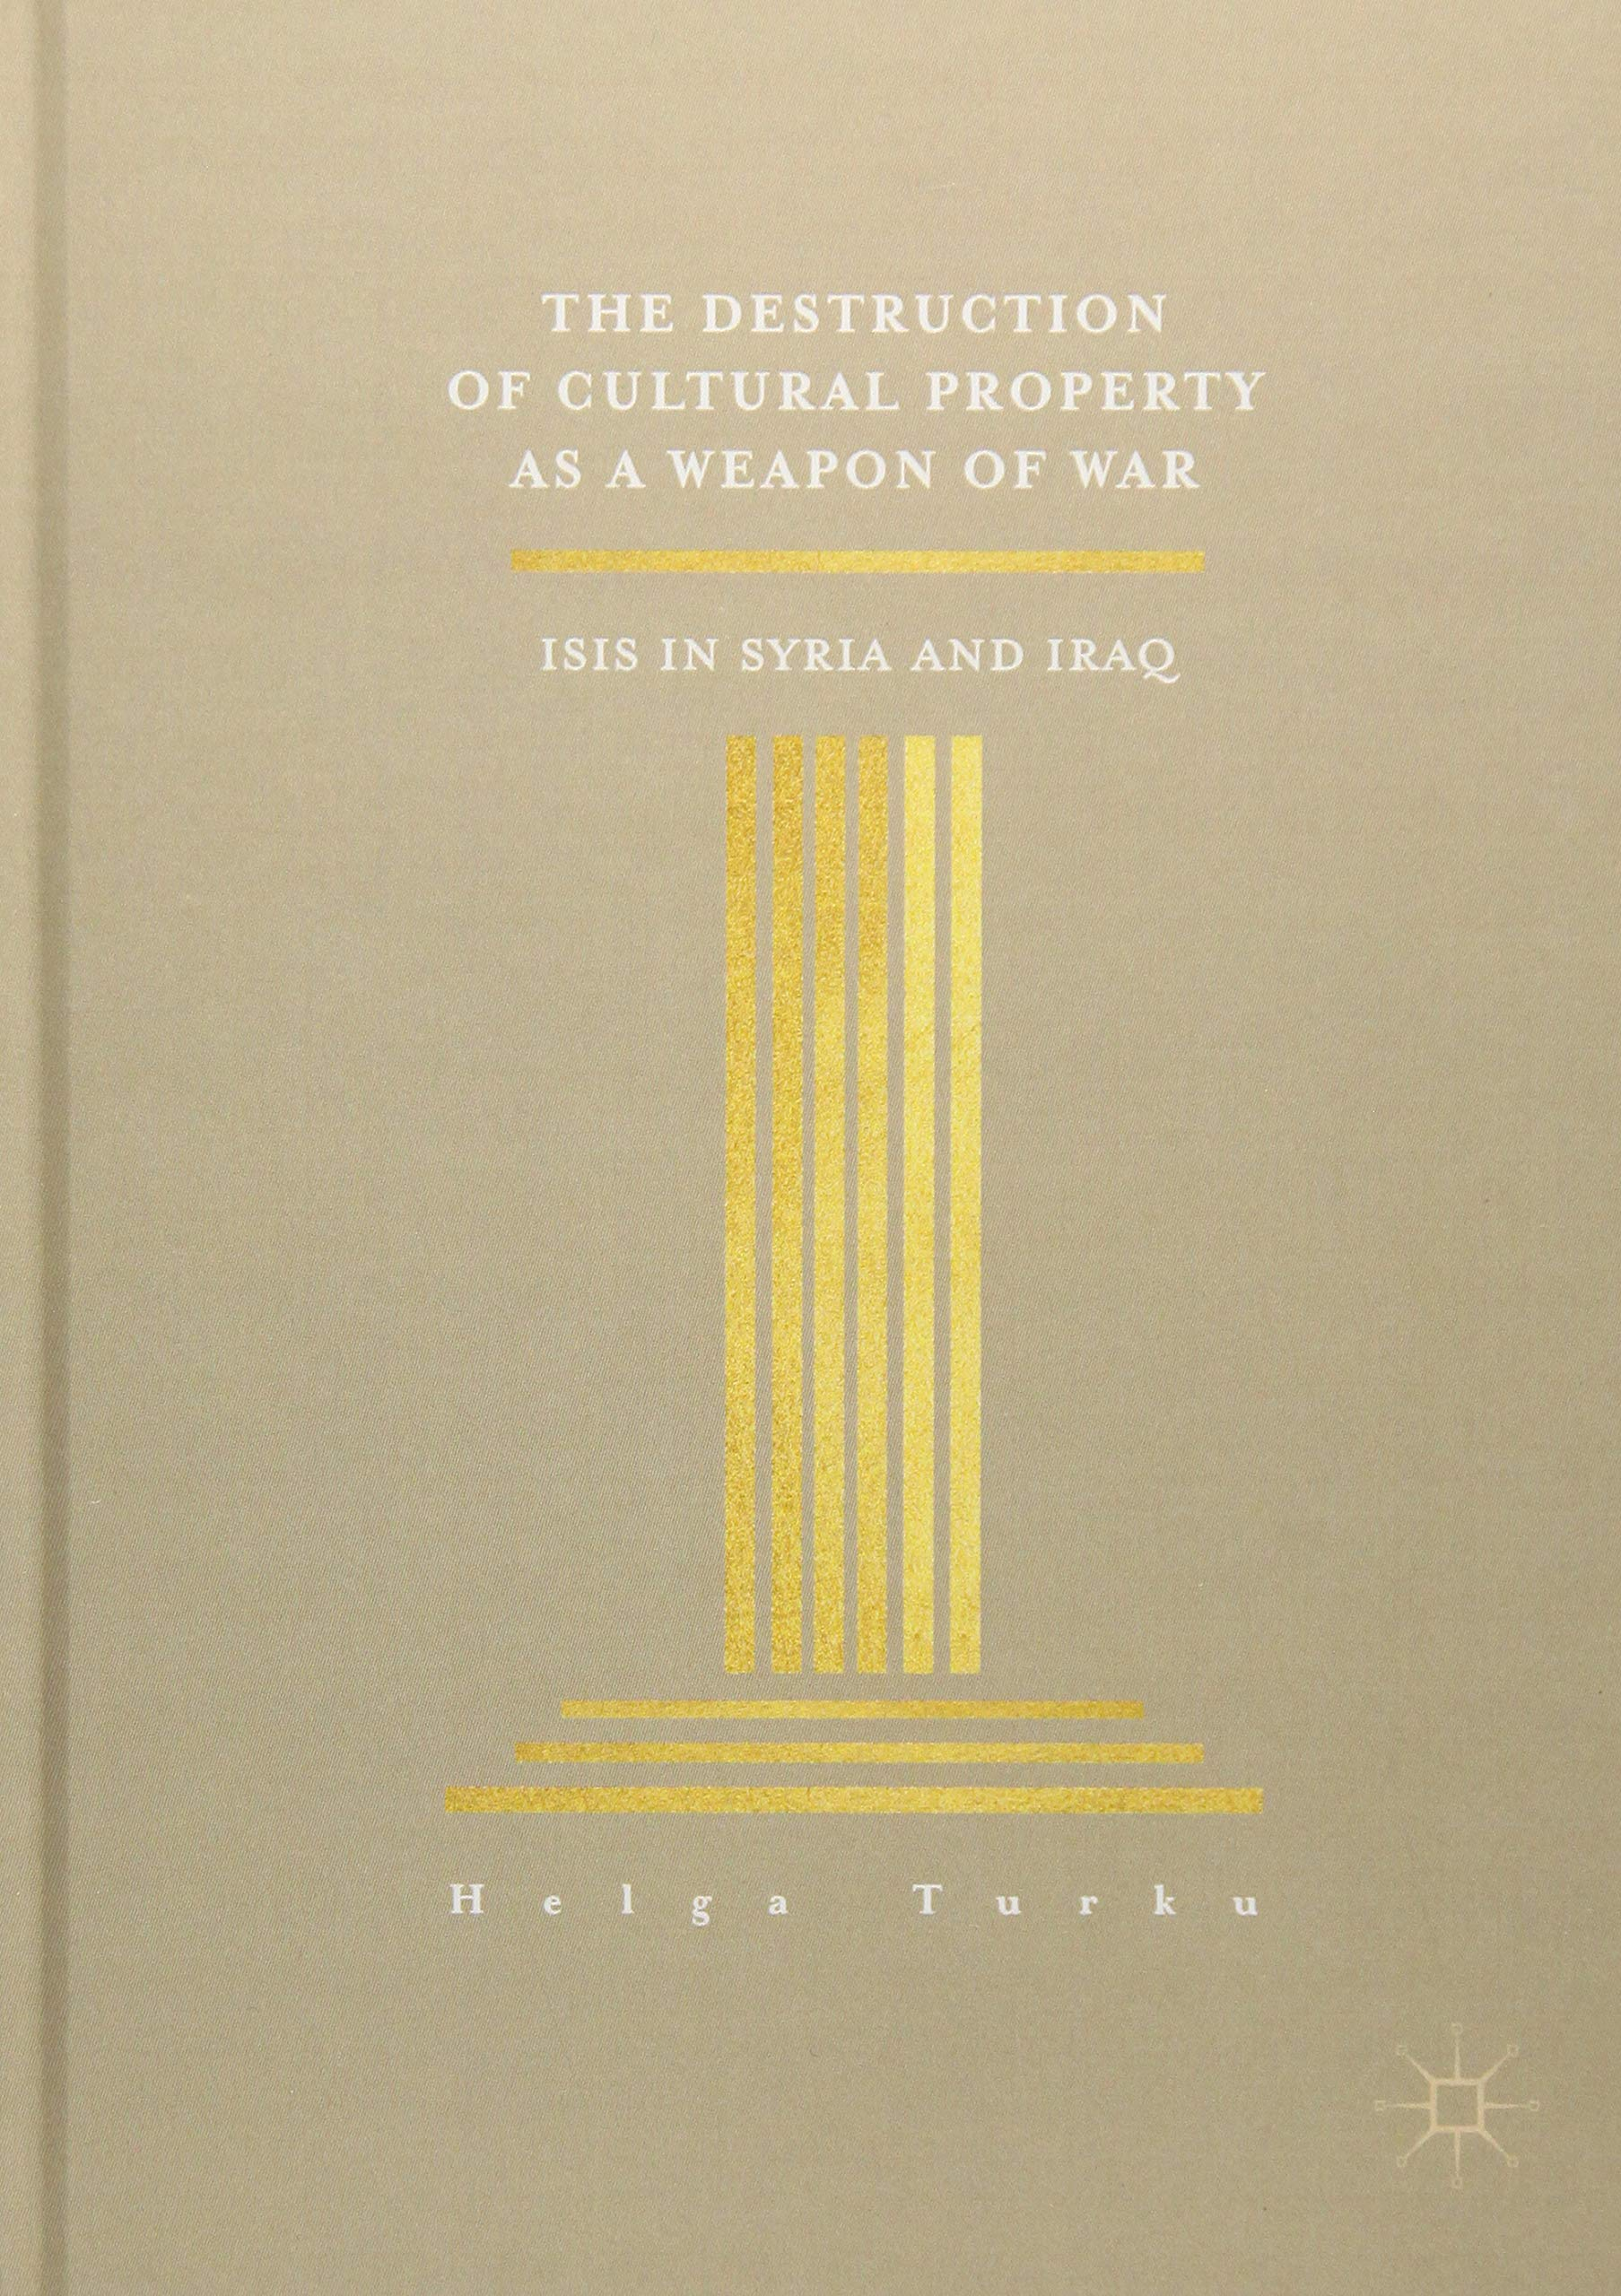 The Destruction of Cultural Property as a weapon of war ISIS in Syria and Iraq